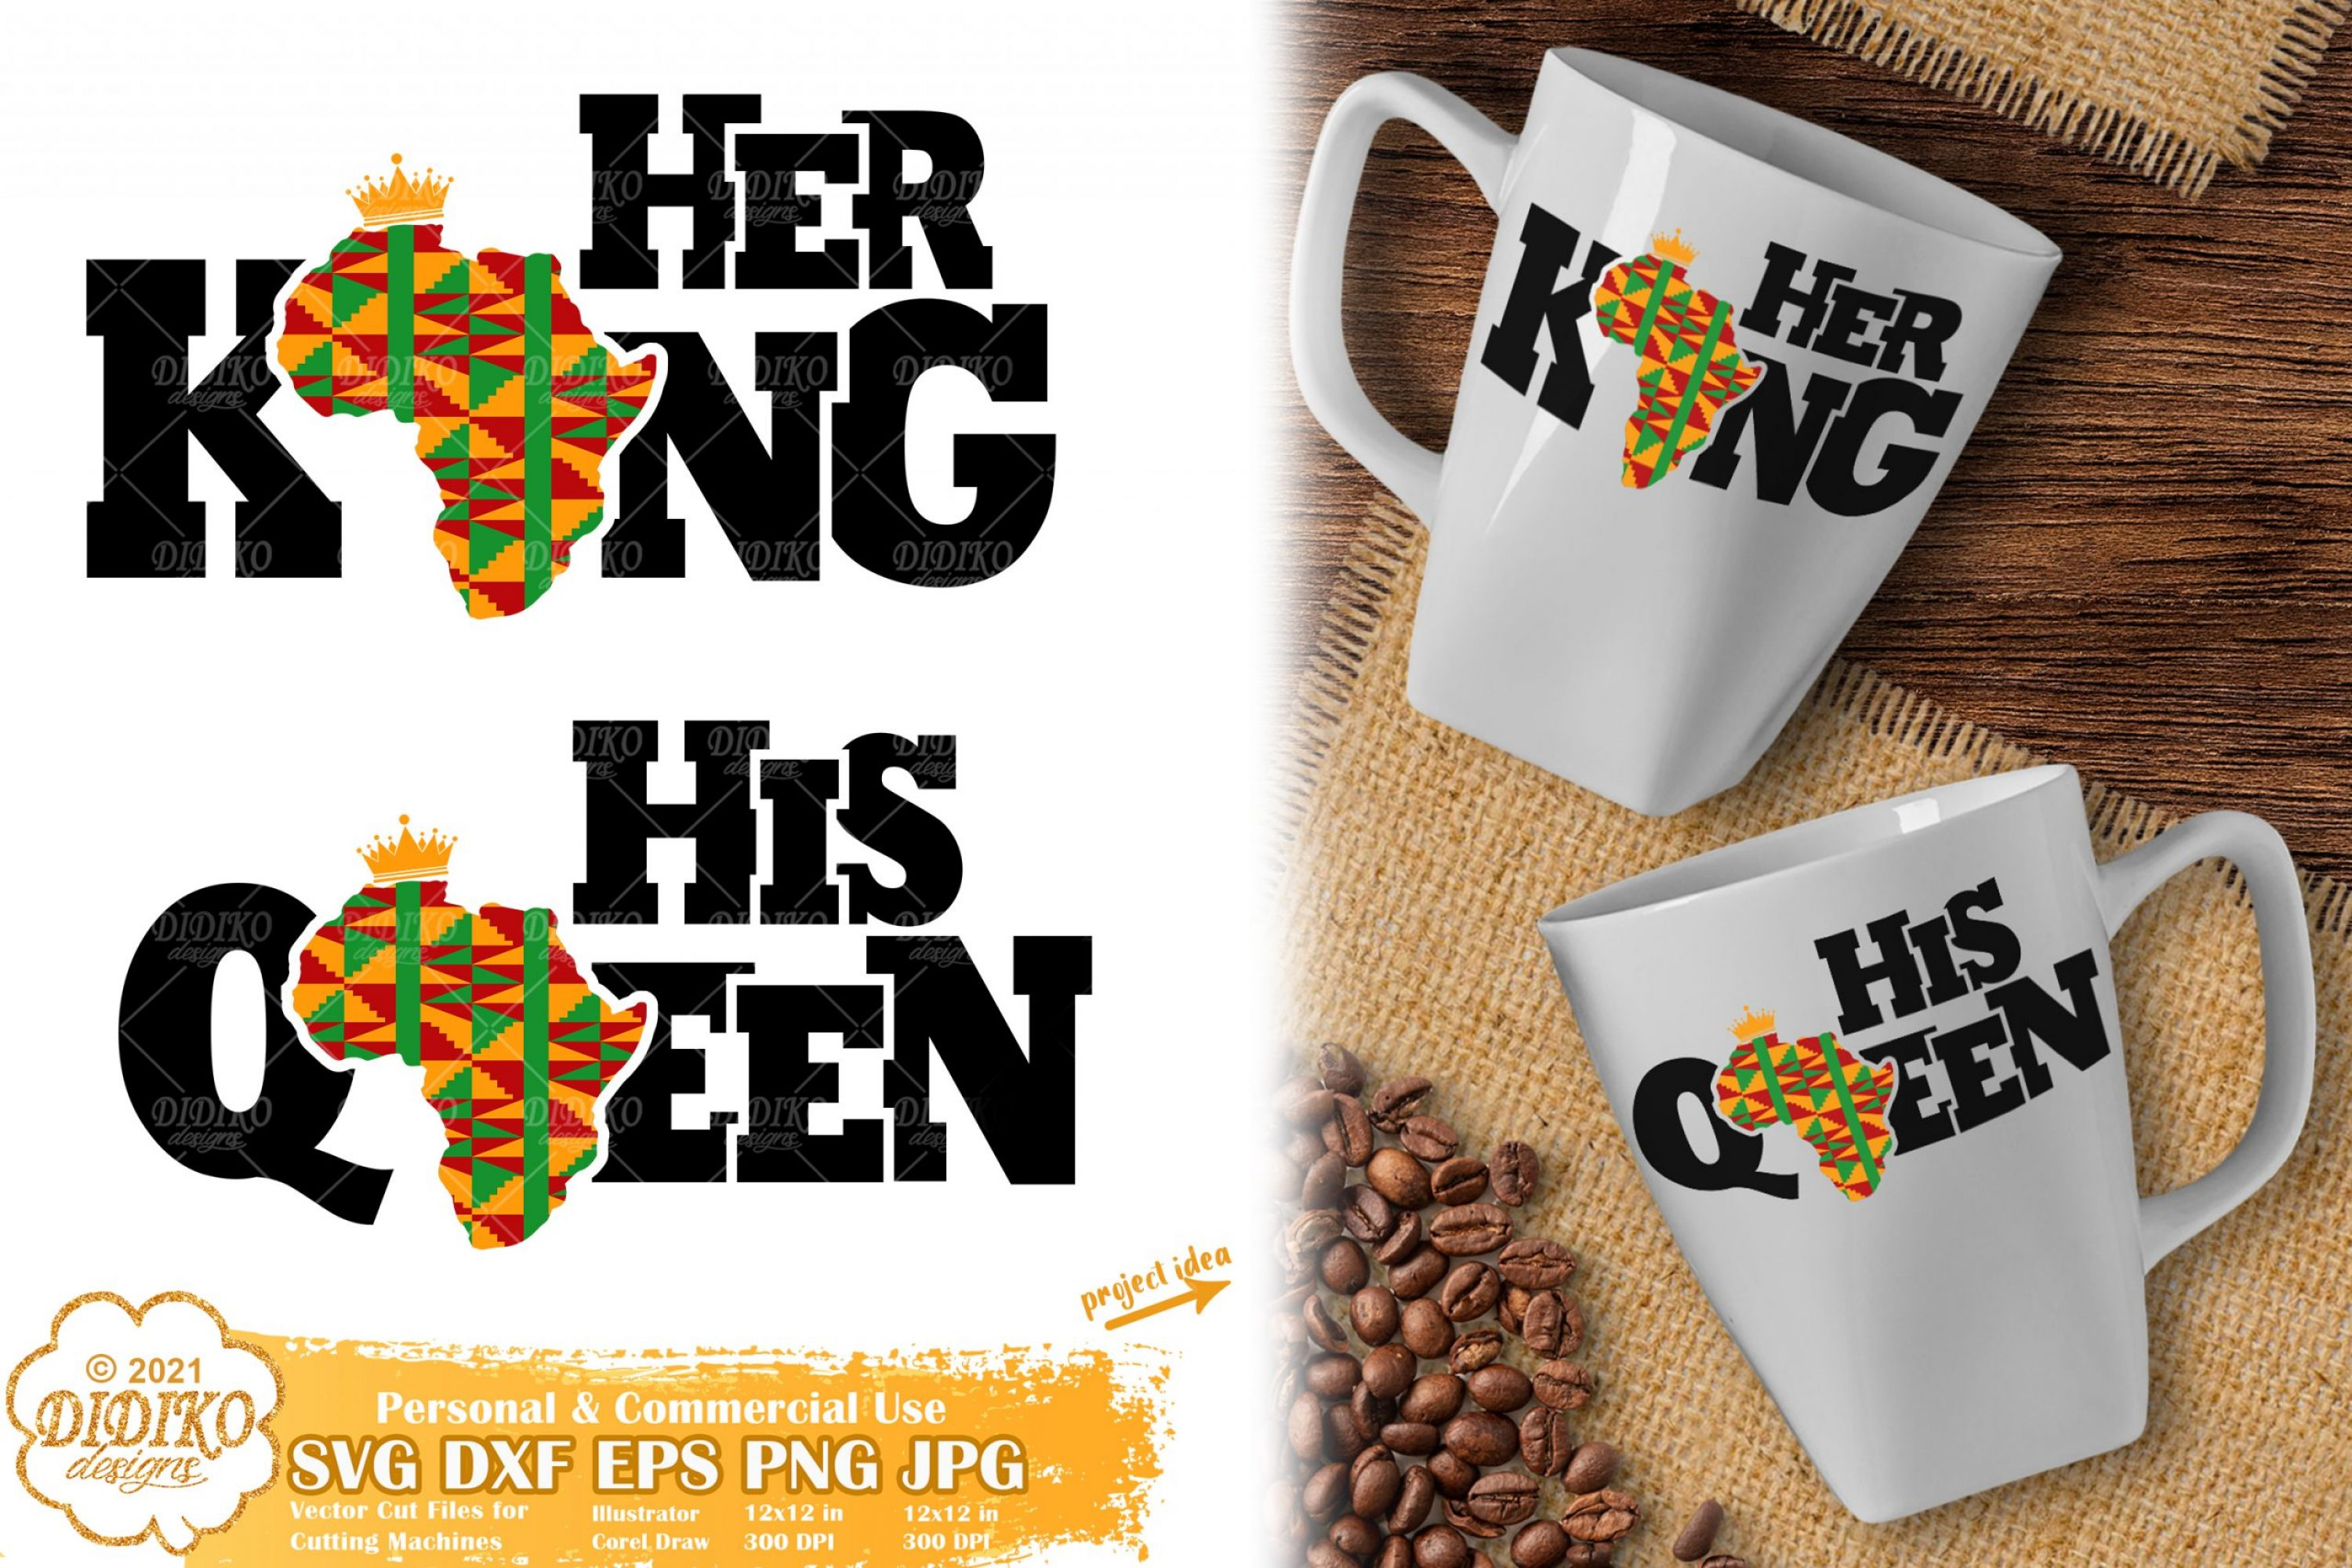 Her King His Queen SVG, Black History Svg, Ankara Svg